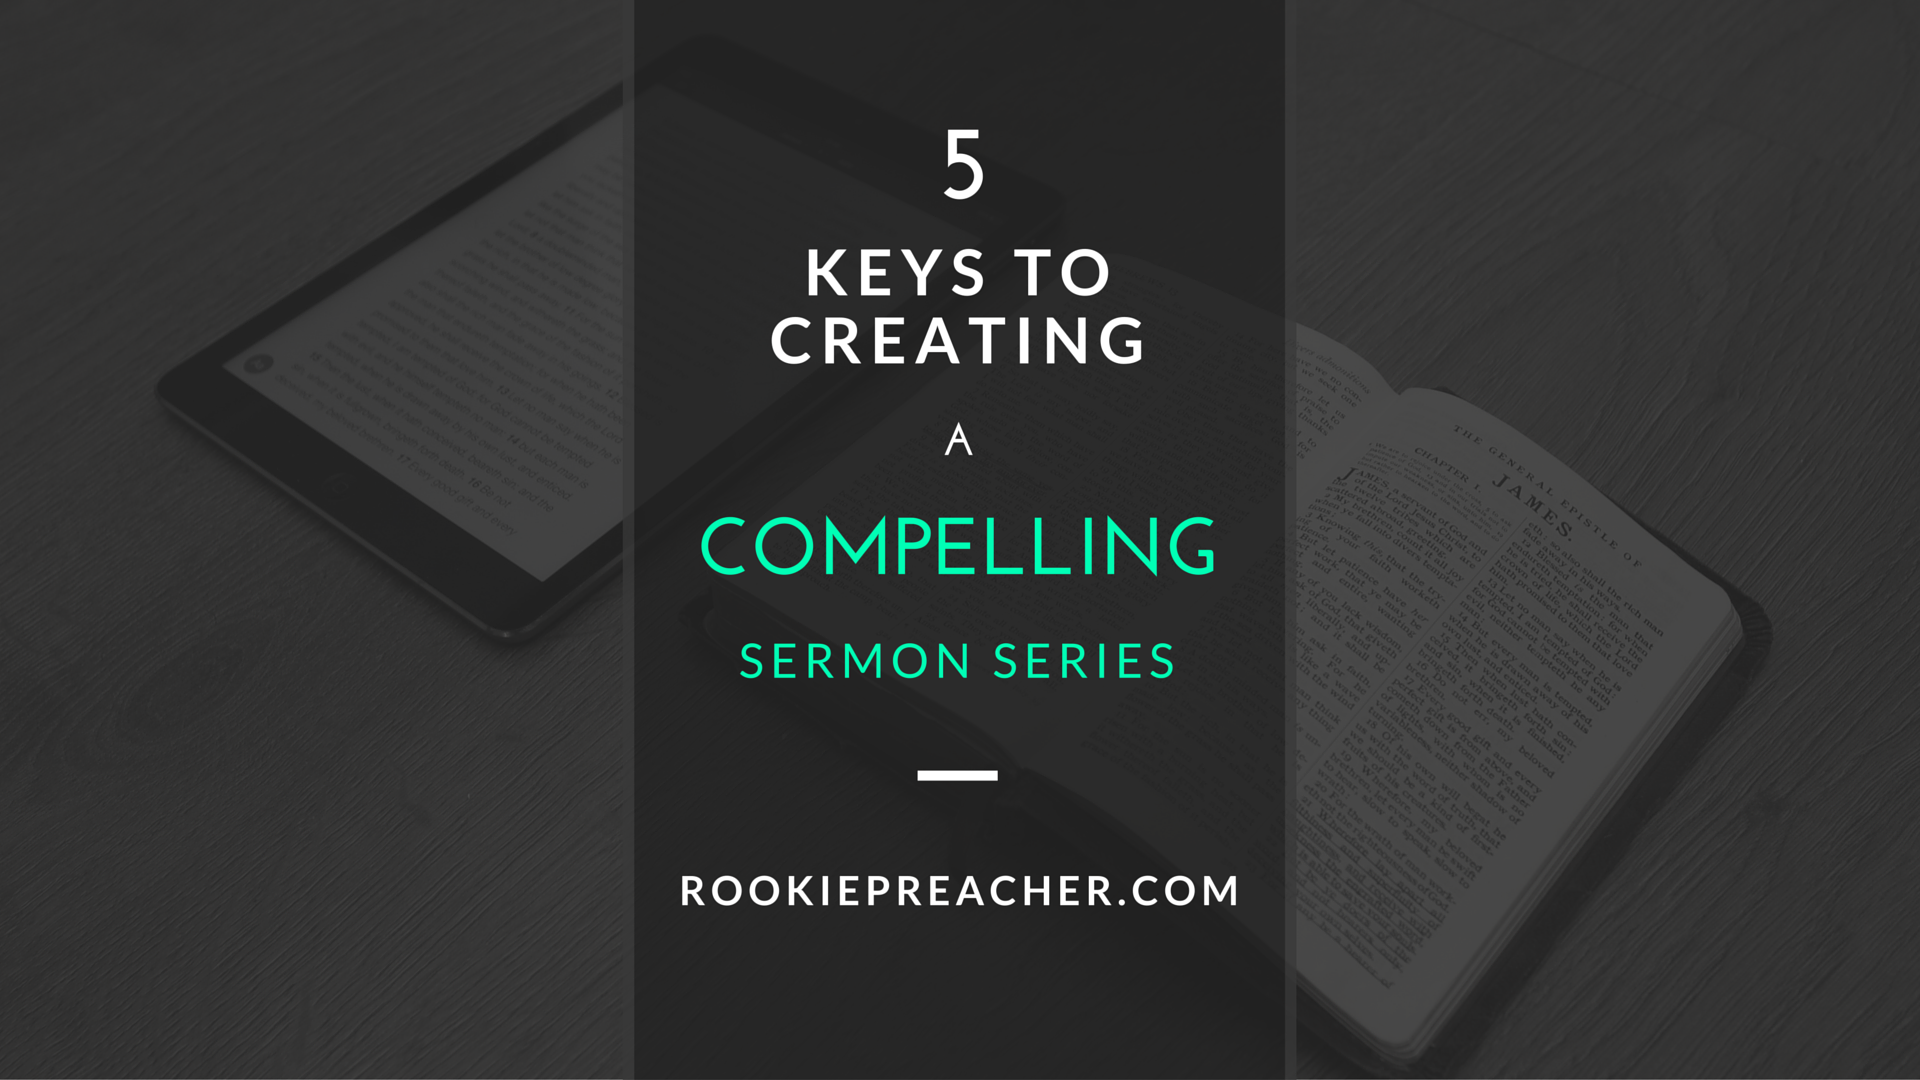 5 Keys to Creating a Compelling Sermon Series